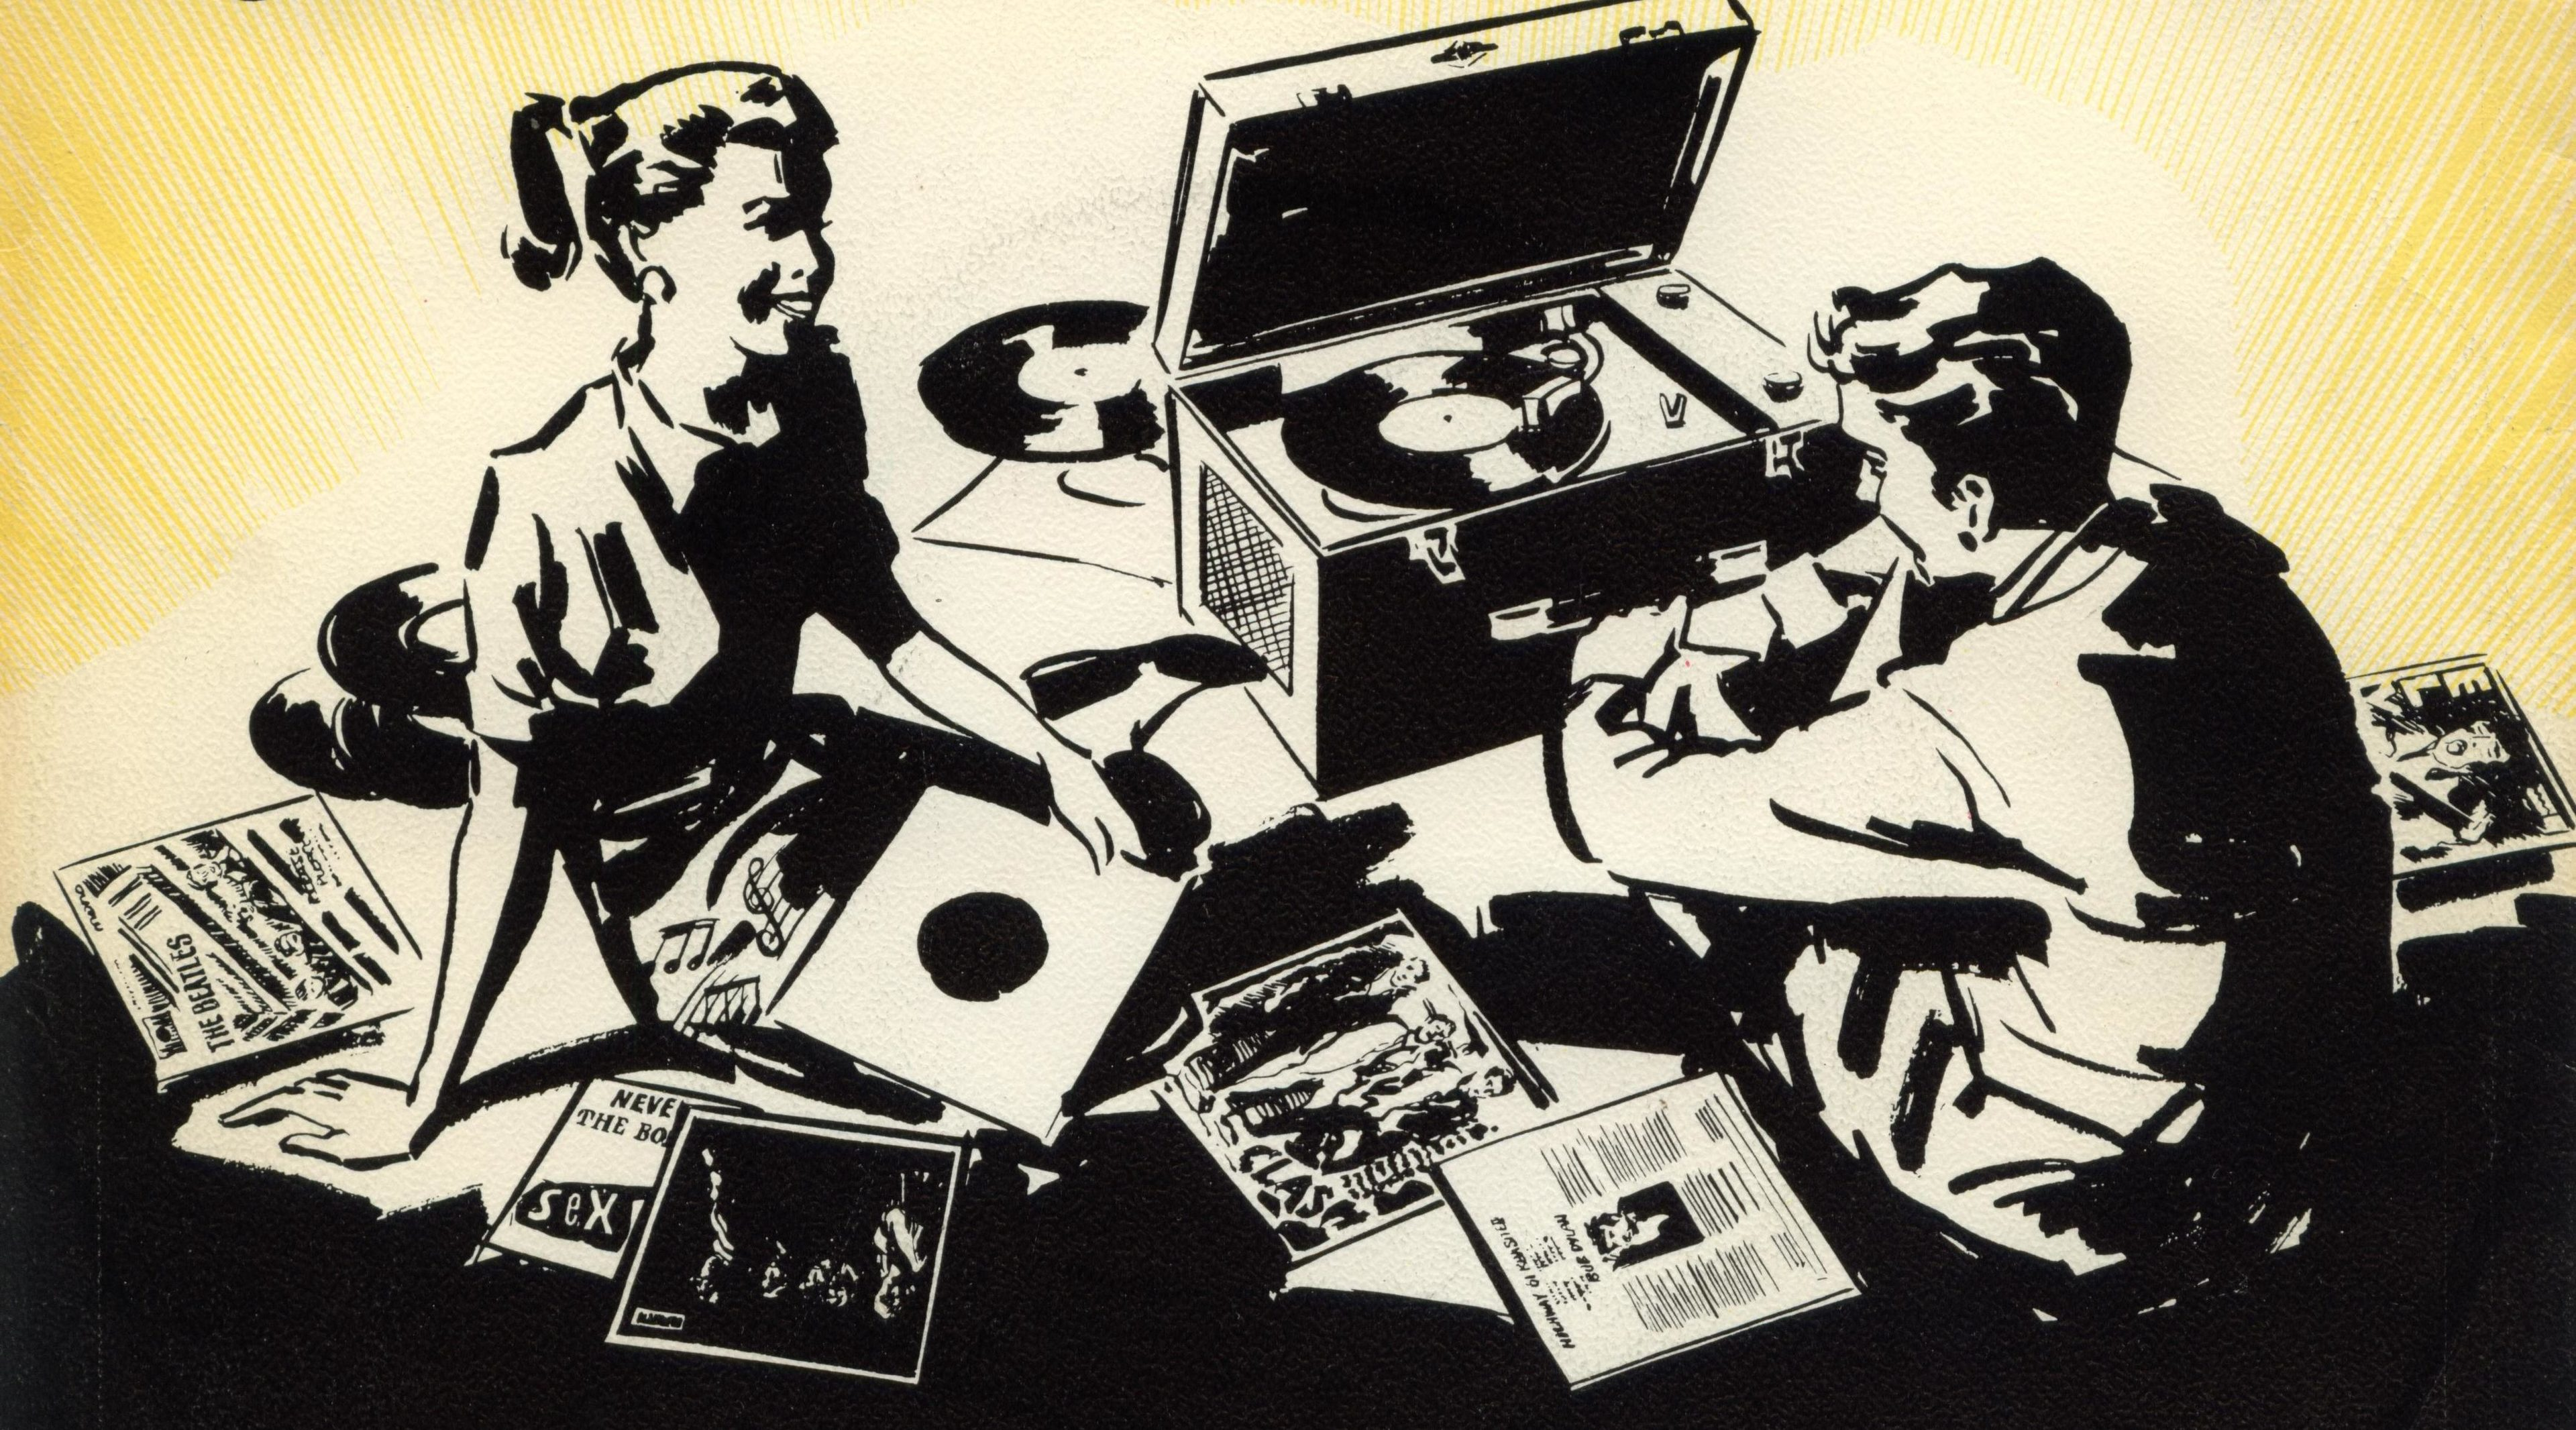 Retro vinyl has made a comeback in recent years, but will it stick?